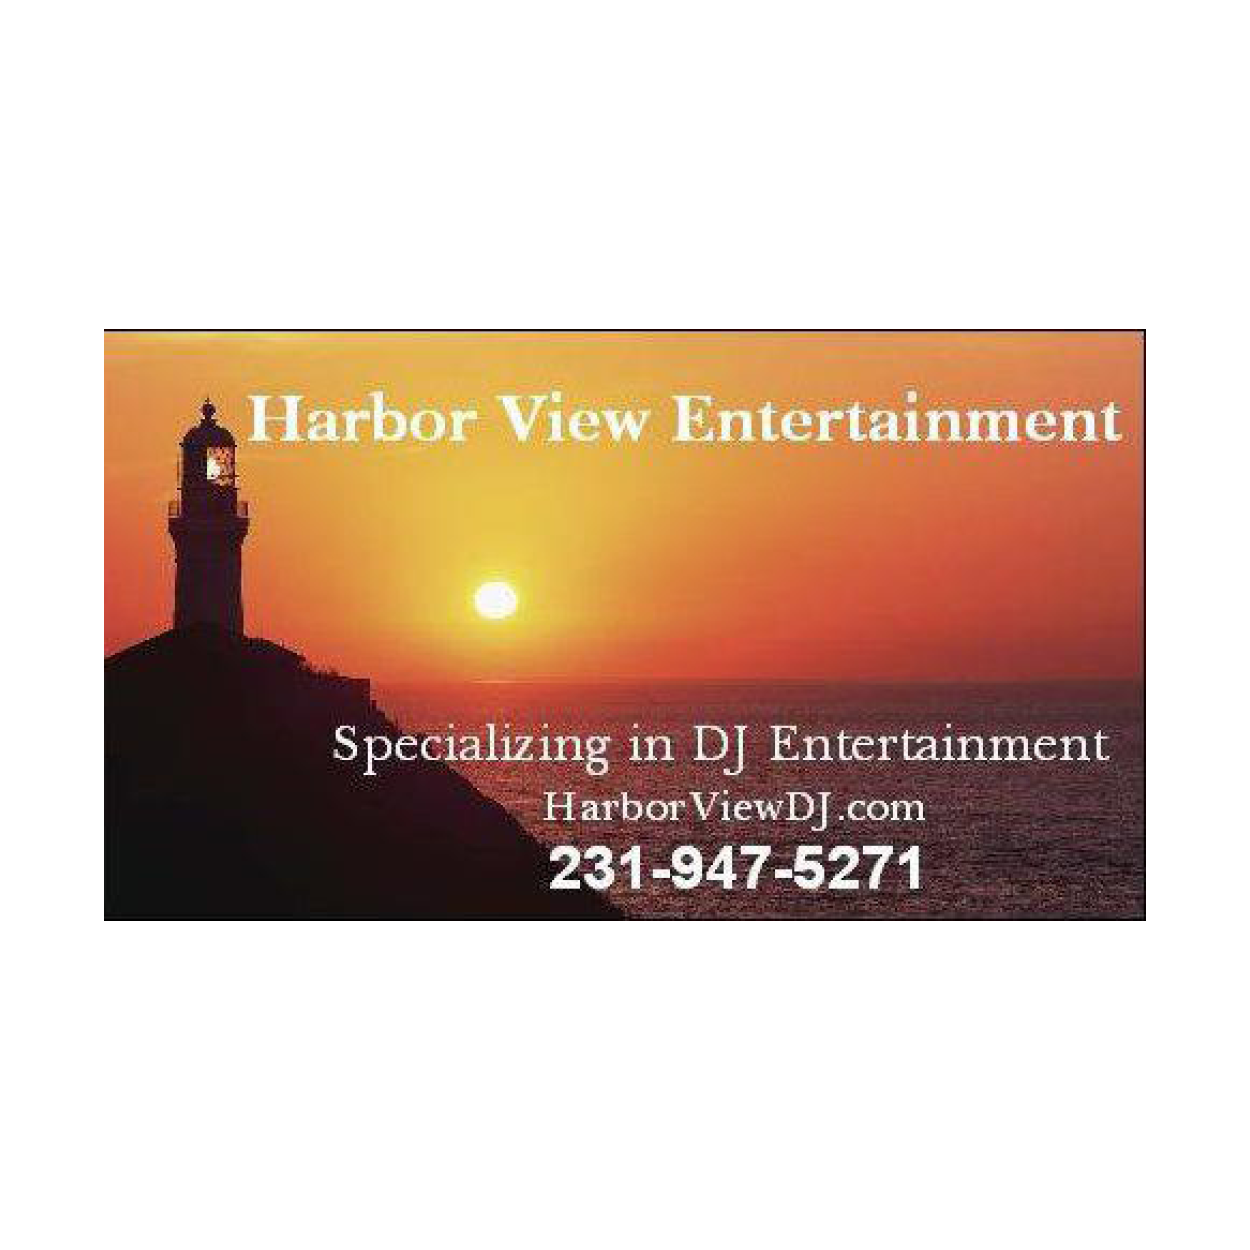 HarborViewEntertainmentLogo